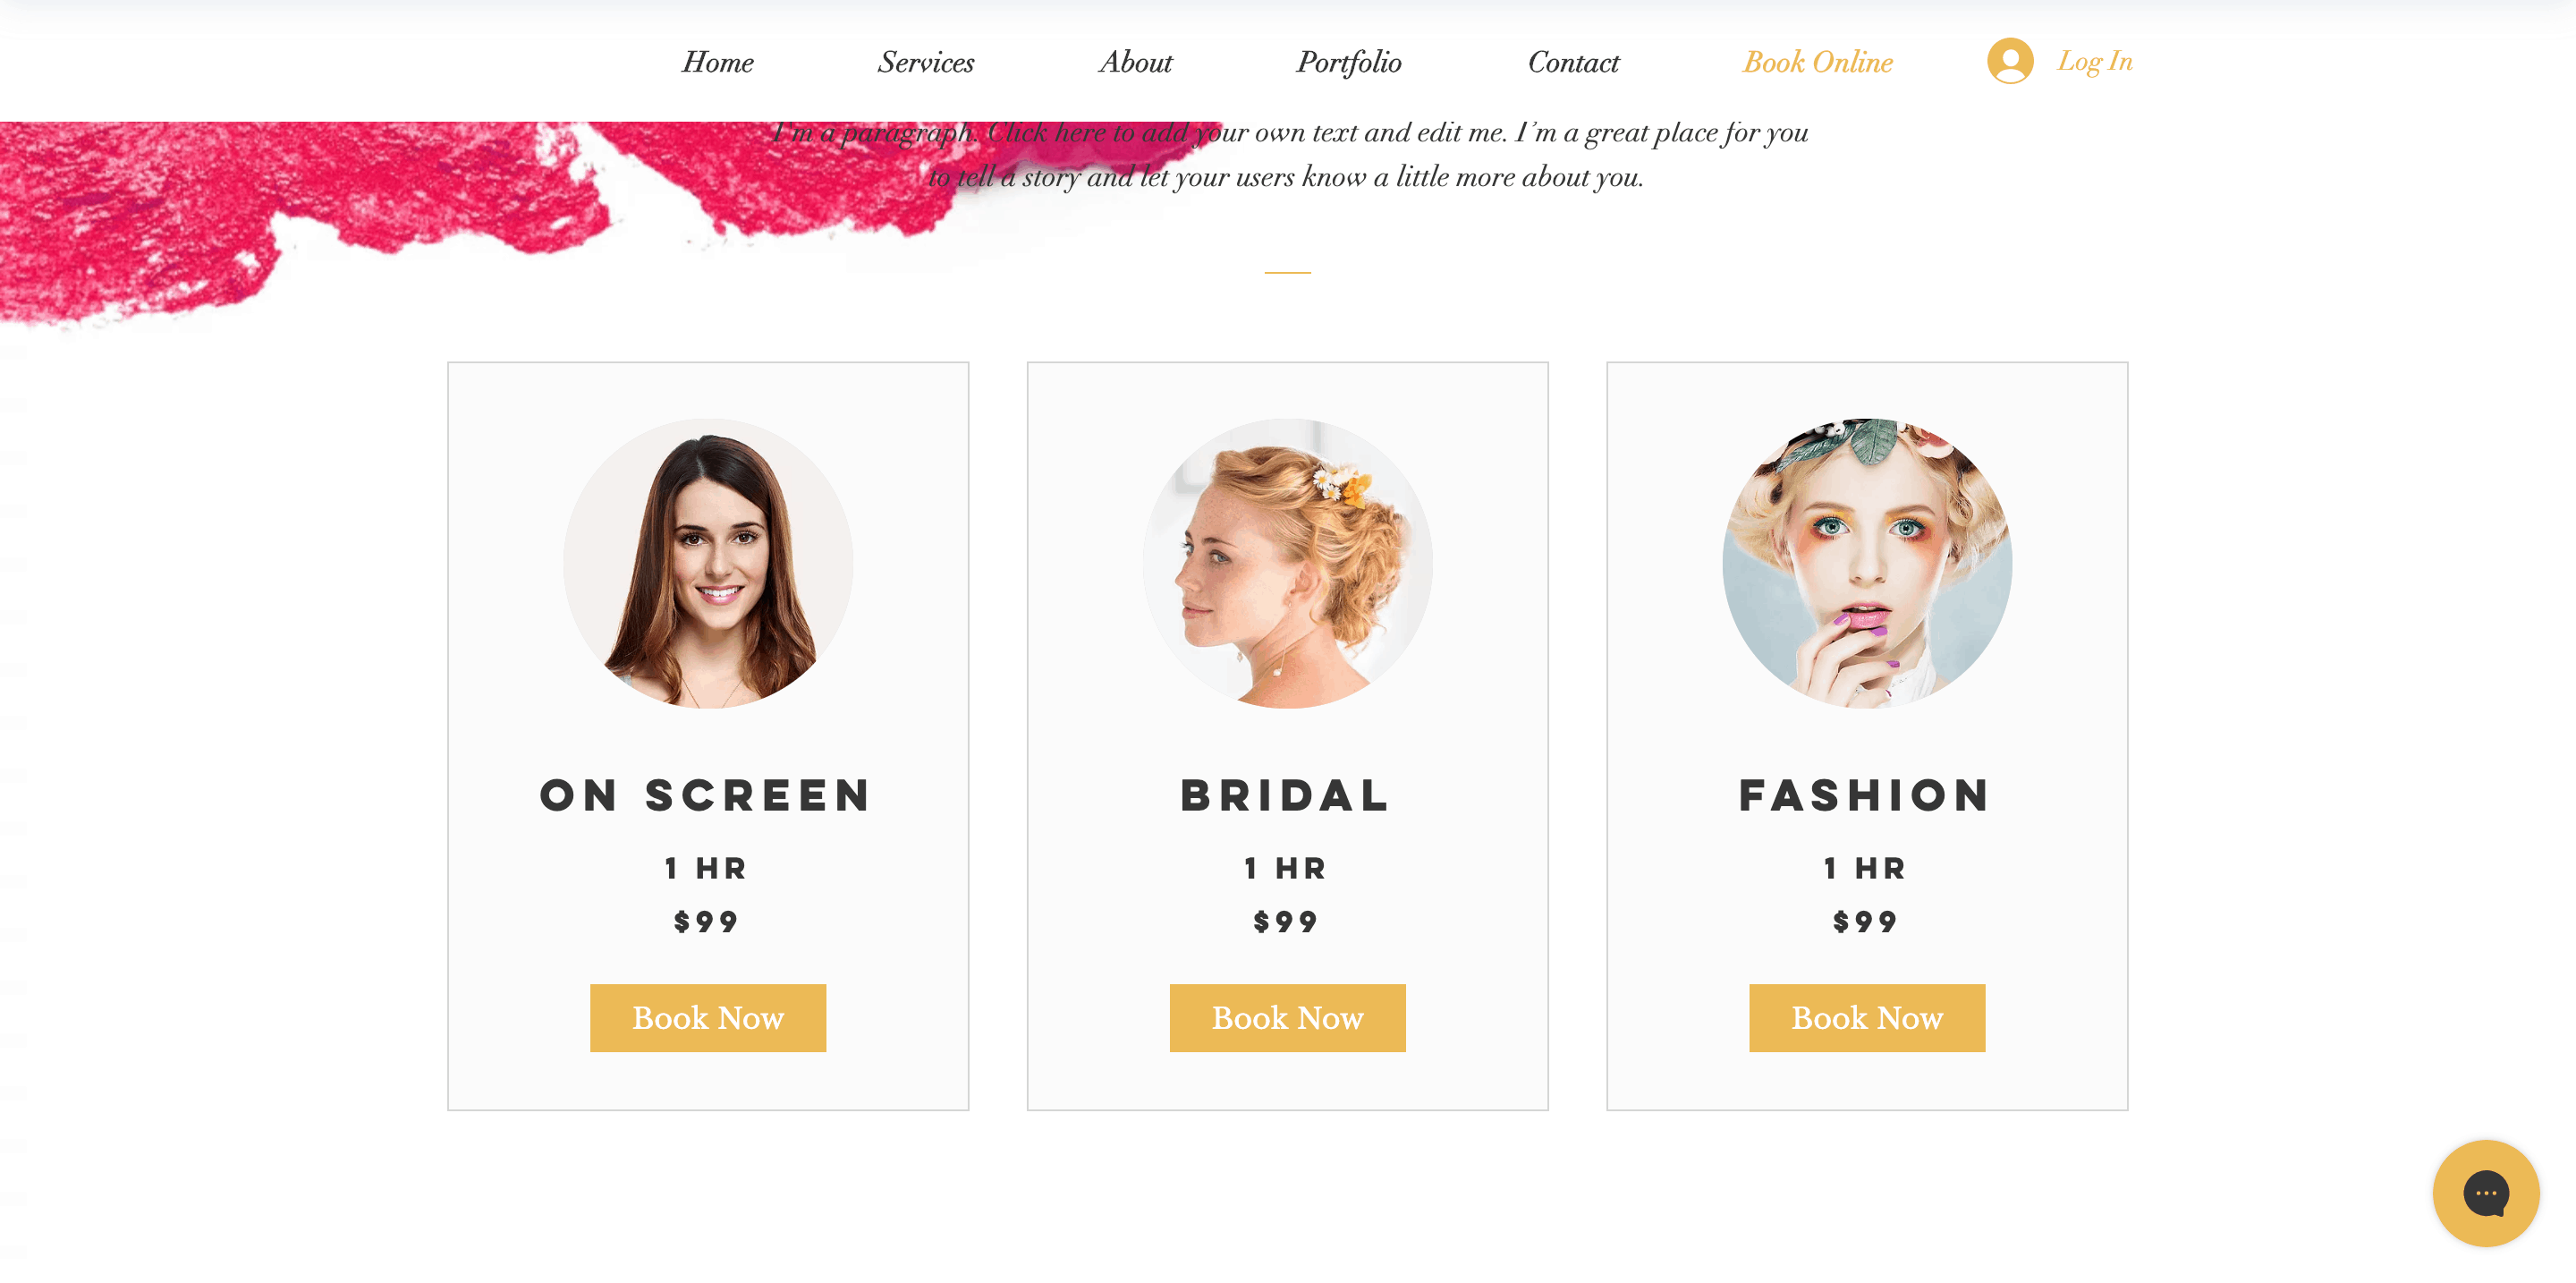 Salon website design inspiration